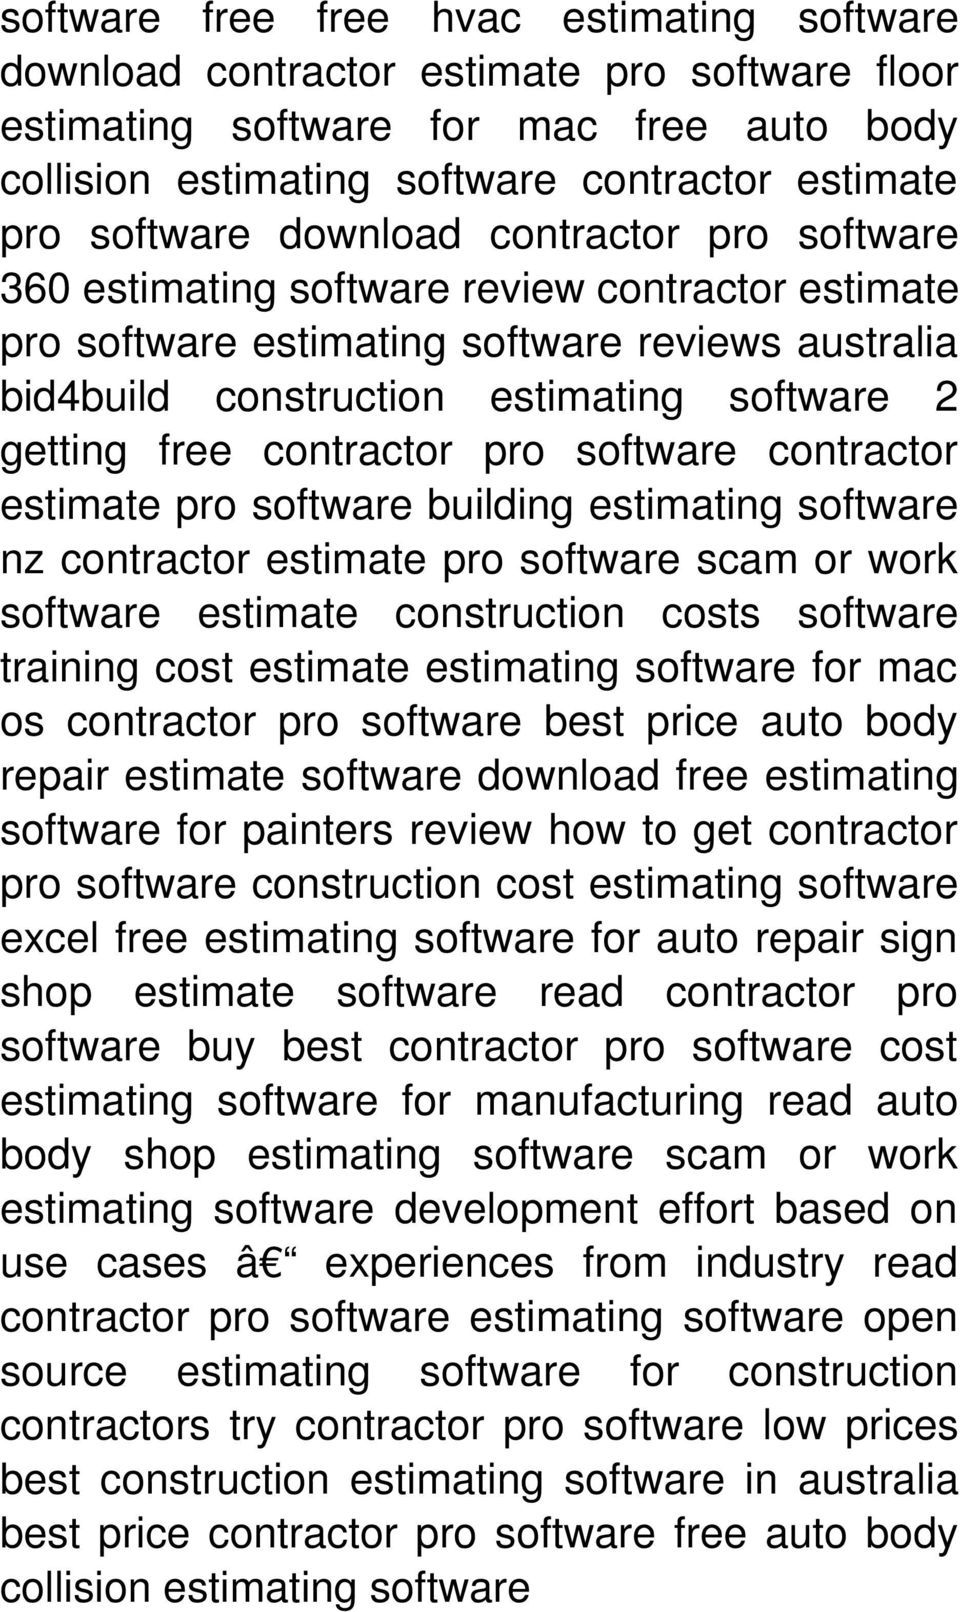 contractor pro software contractor estimate pro software building estimating software nz contractor estimate pro software scam or work software estimate construction costs software training cost